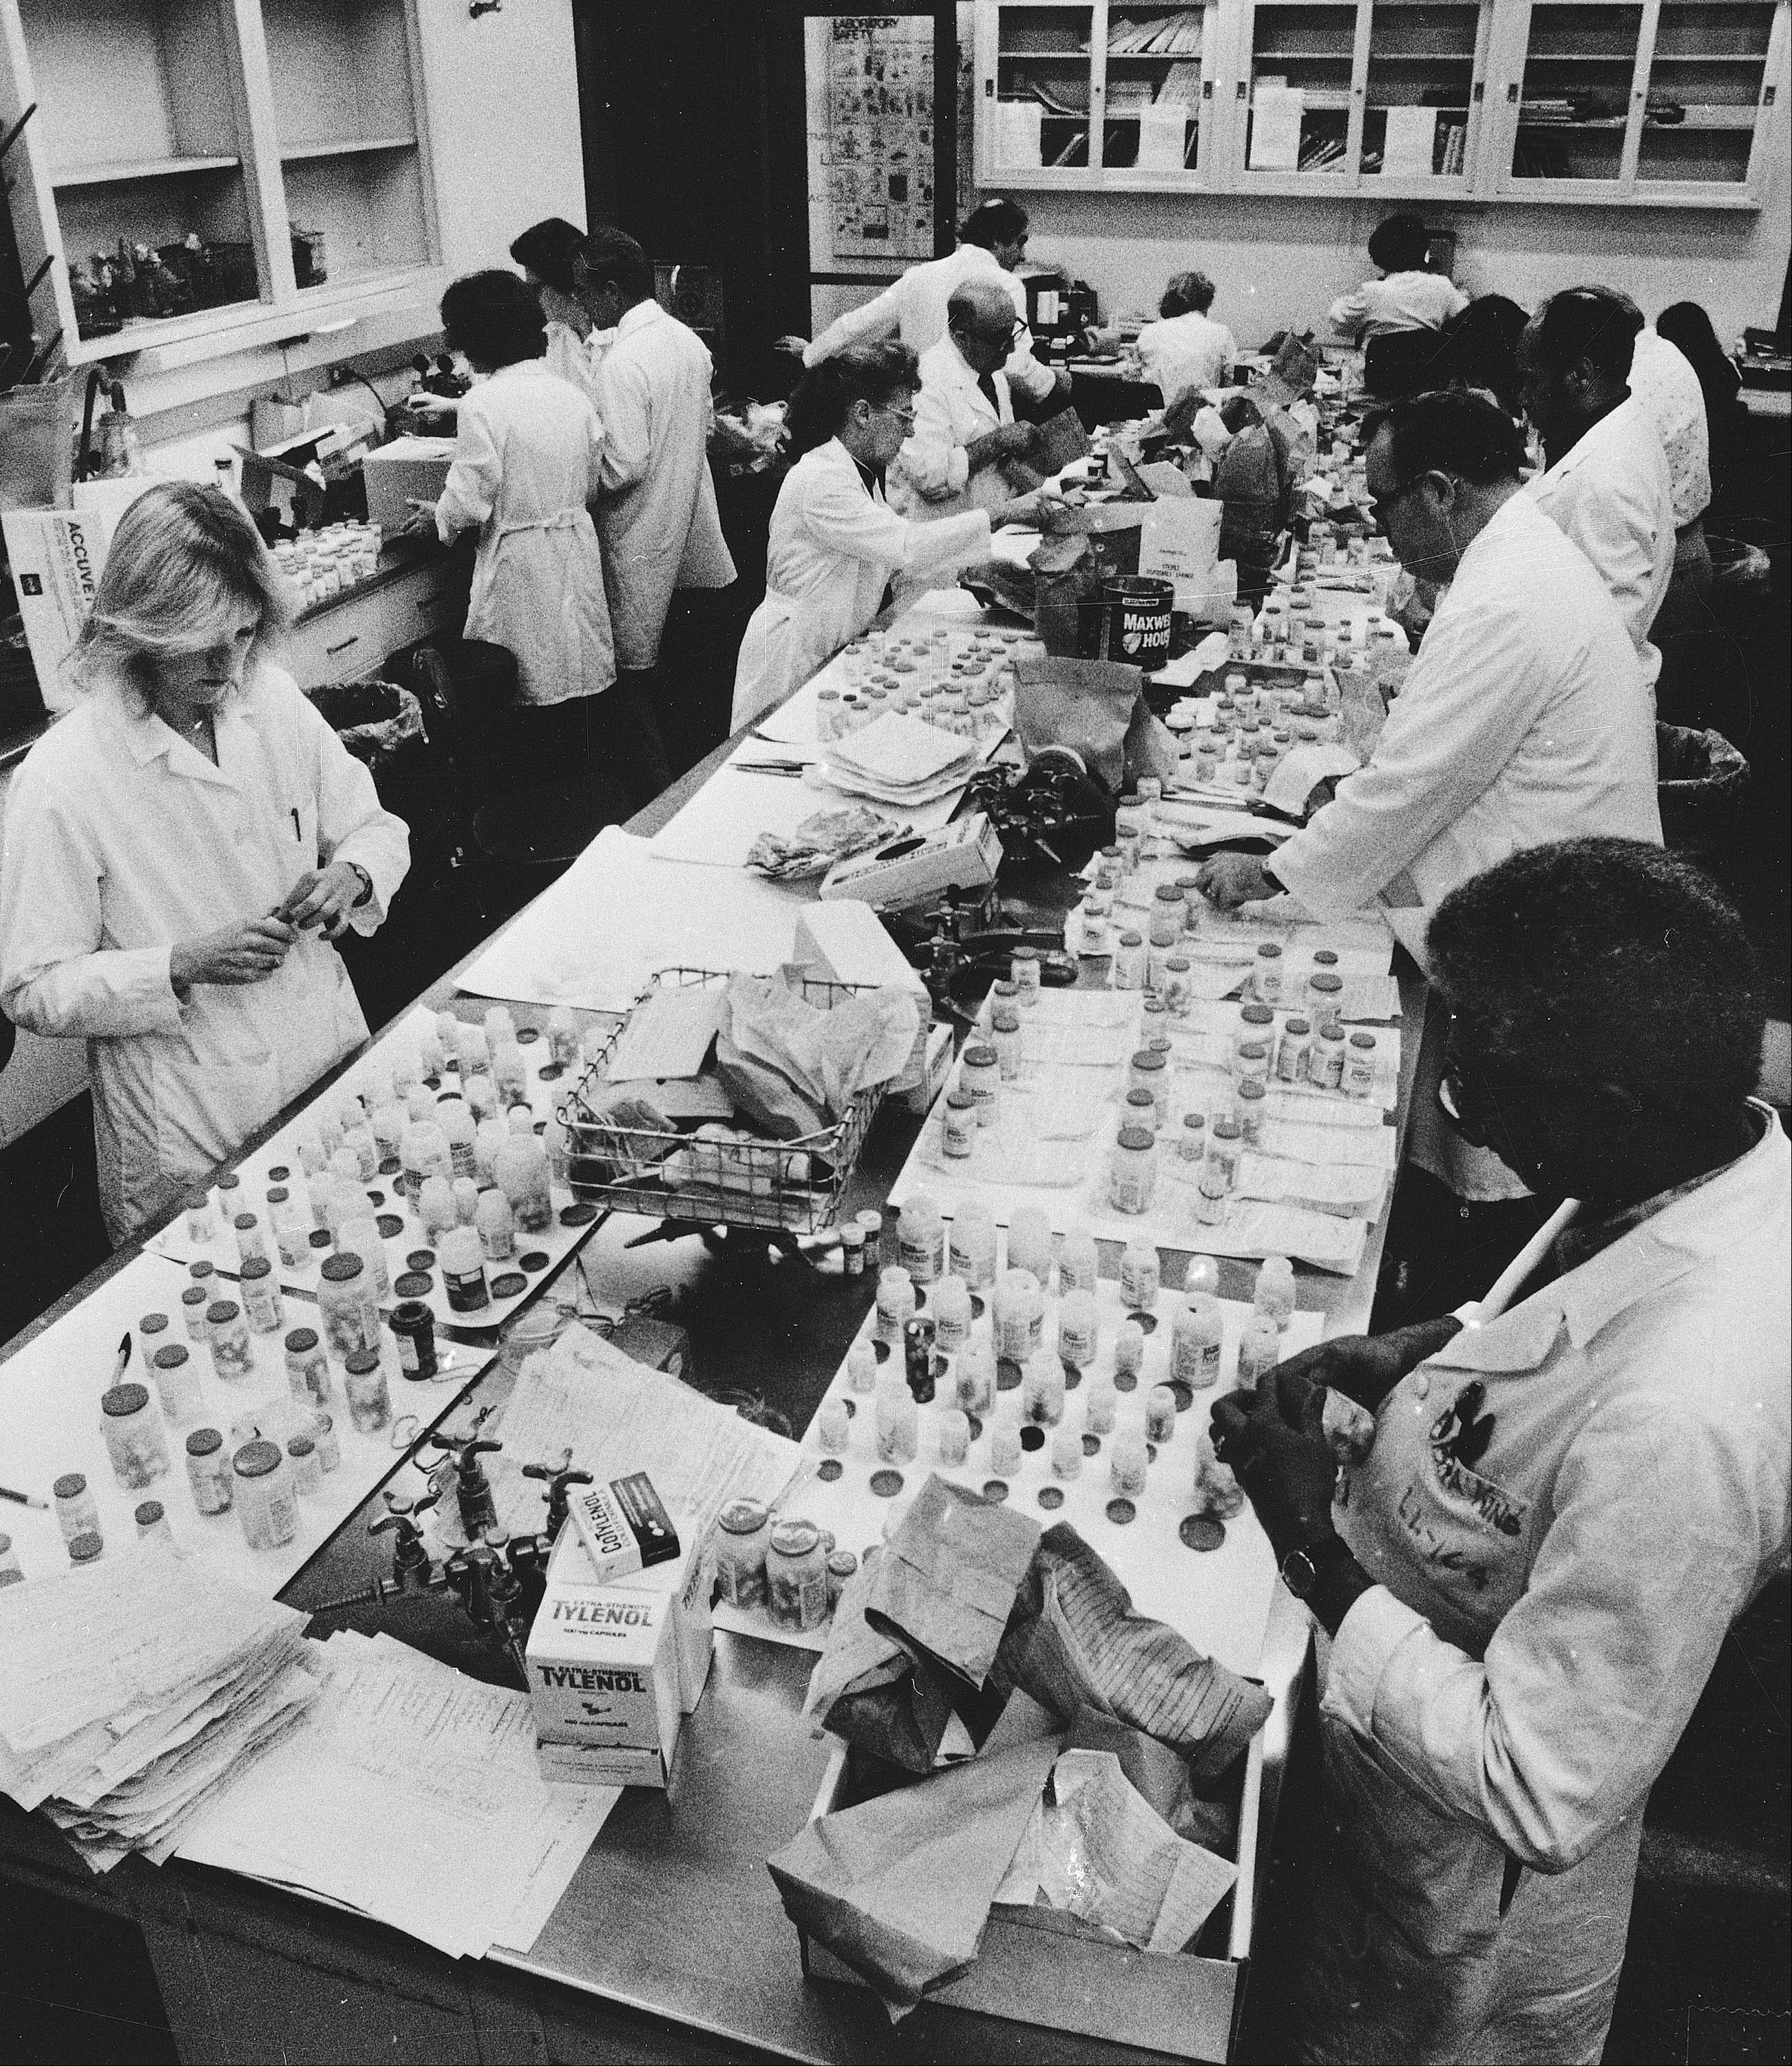 In this Oct. 7, 1982, file photo, employees of the Chicago City Health Department test Tylenol medication for the presence of deadly cyanide at the department's lab. The Tylenol case involved the use of potassium cyanide and resulted in a mass recall.